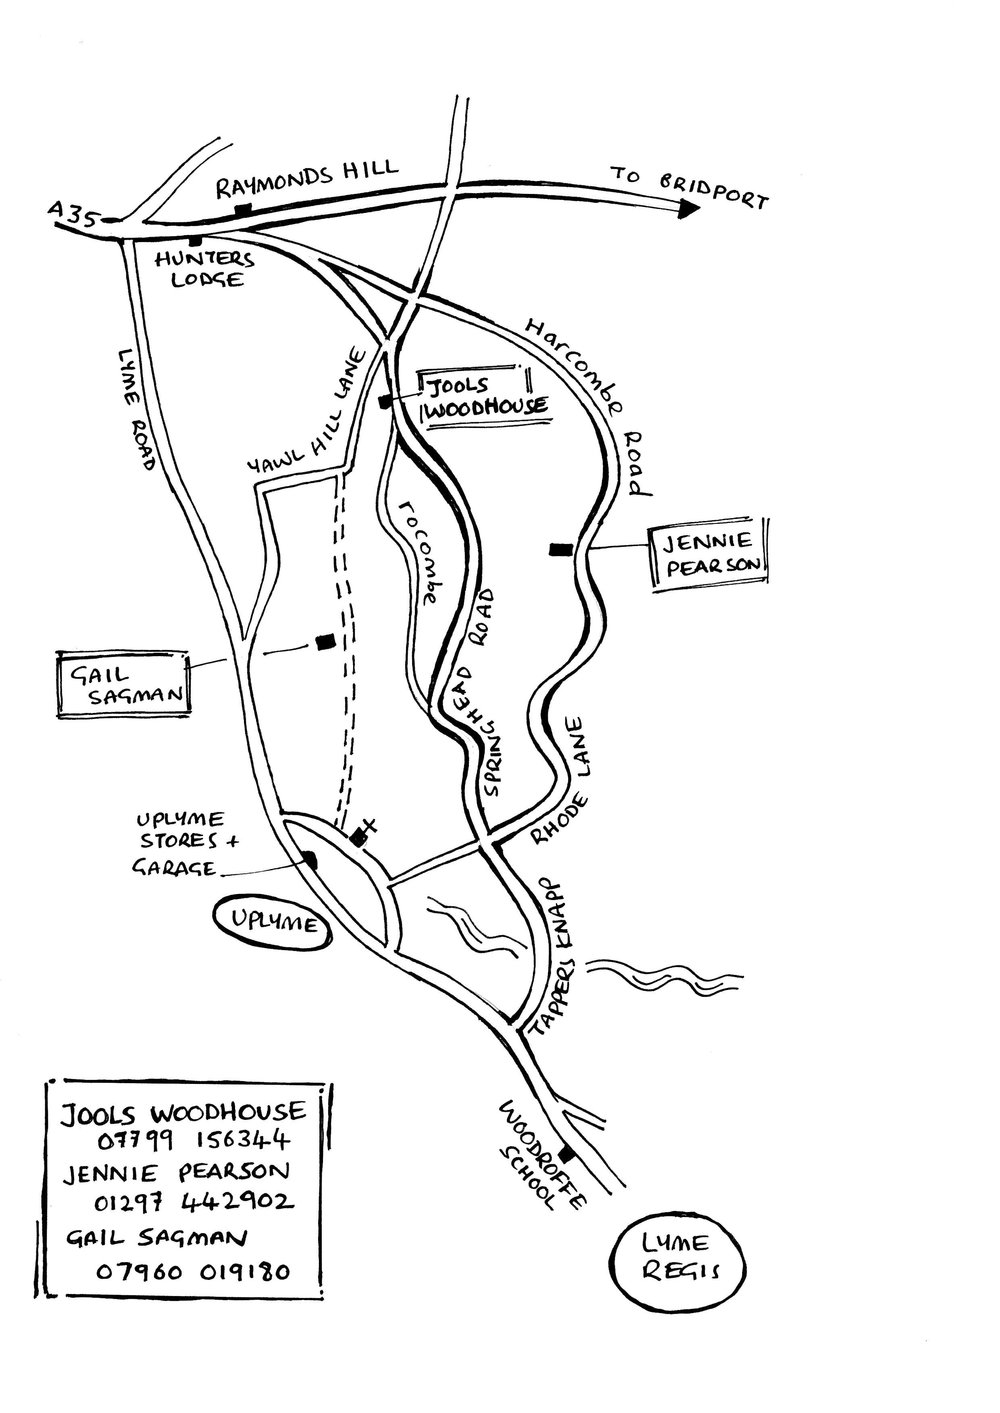 Directions to the 3 OPEN STUDIOS in Uplyme, Rocombe and Harcombe.